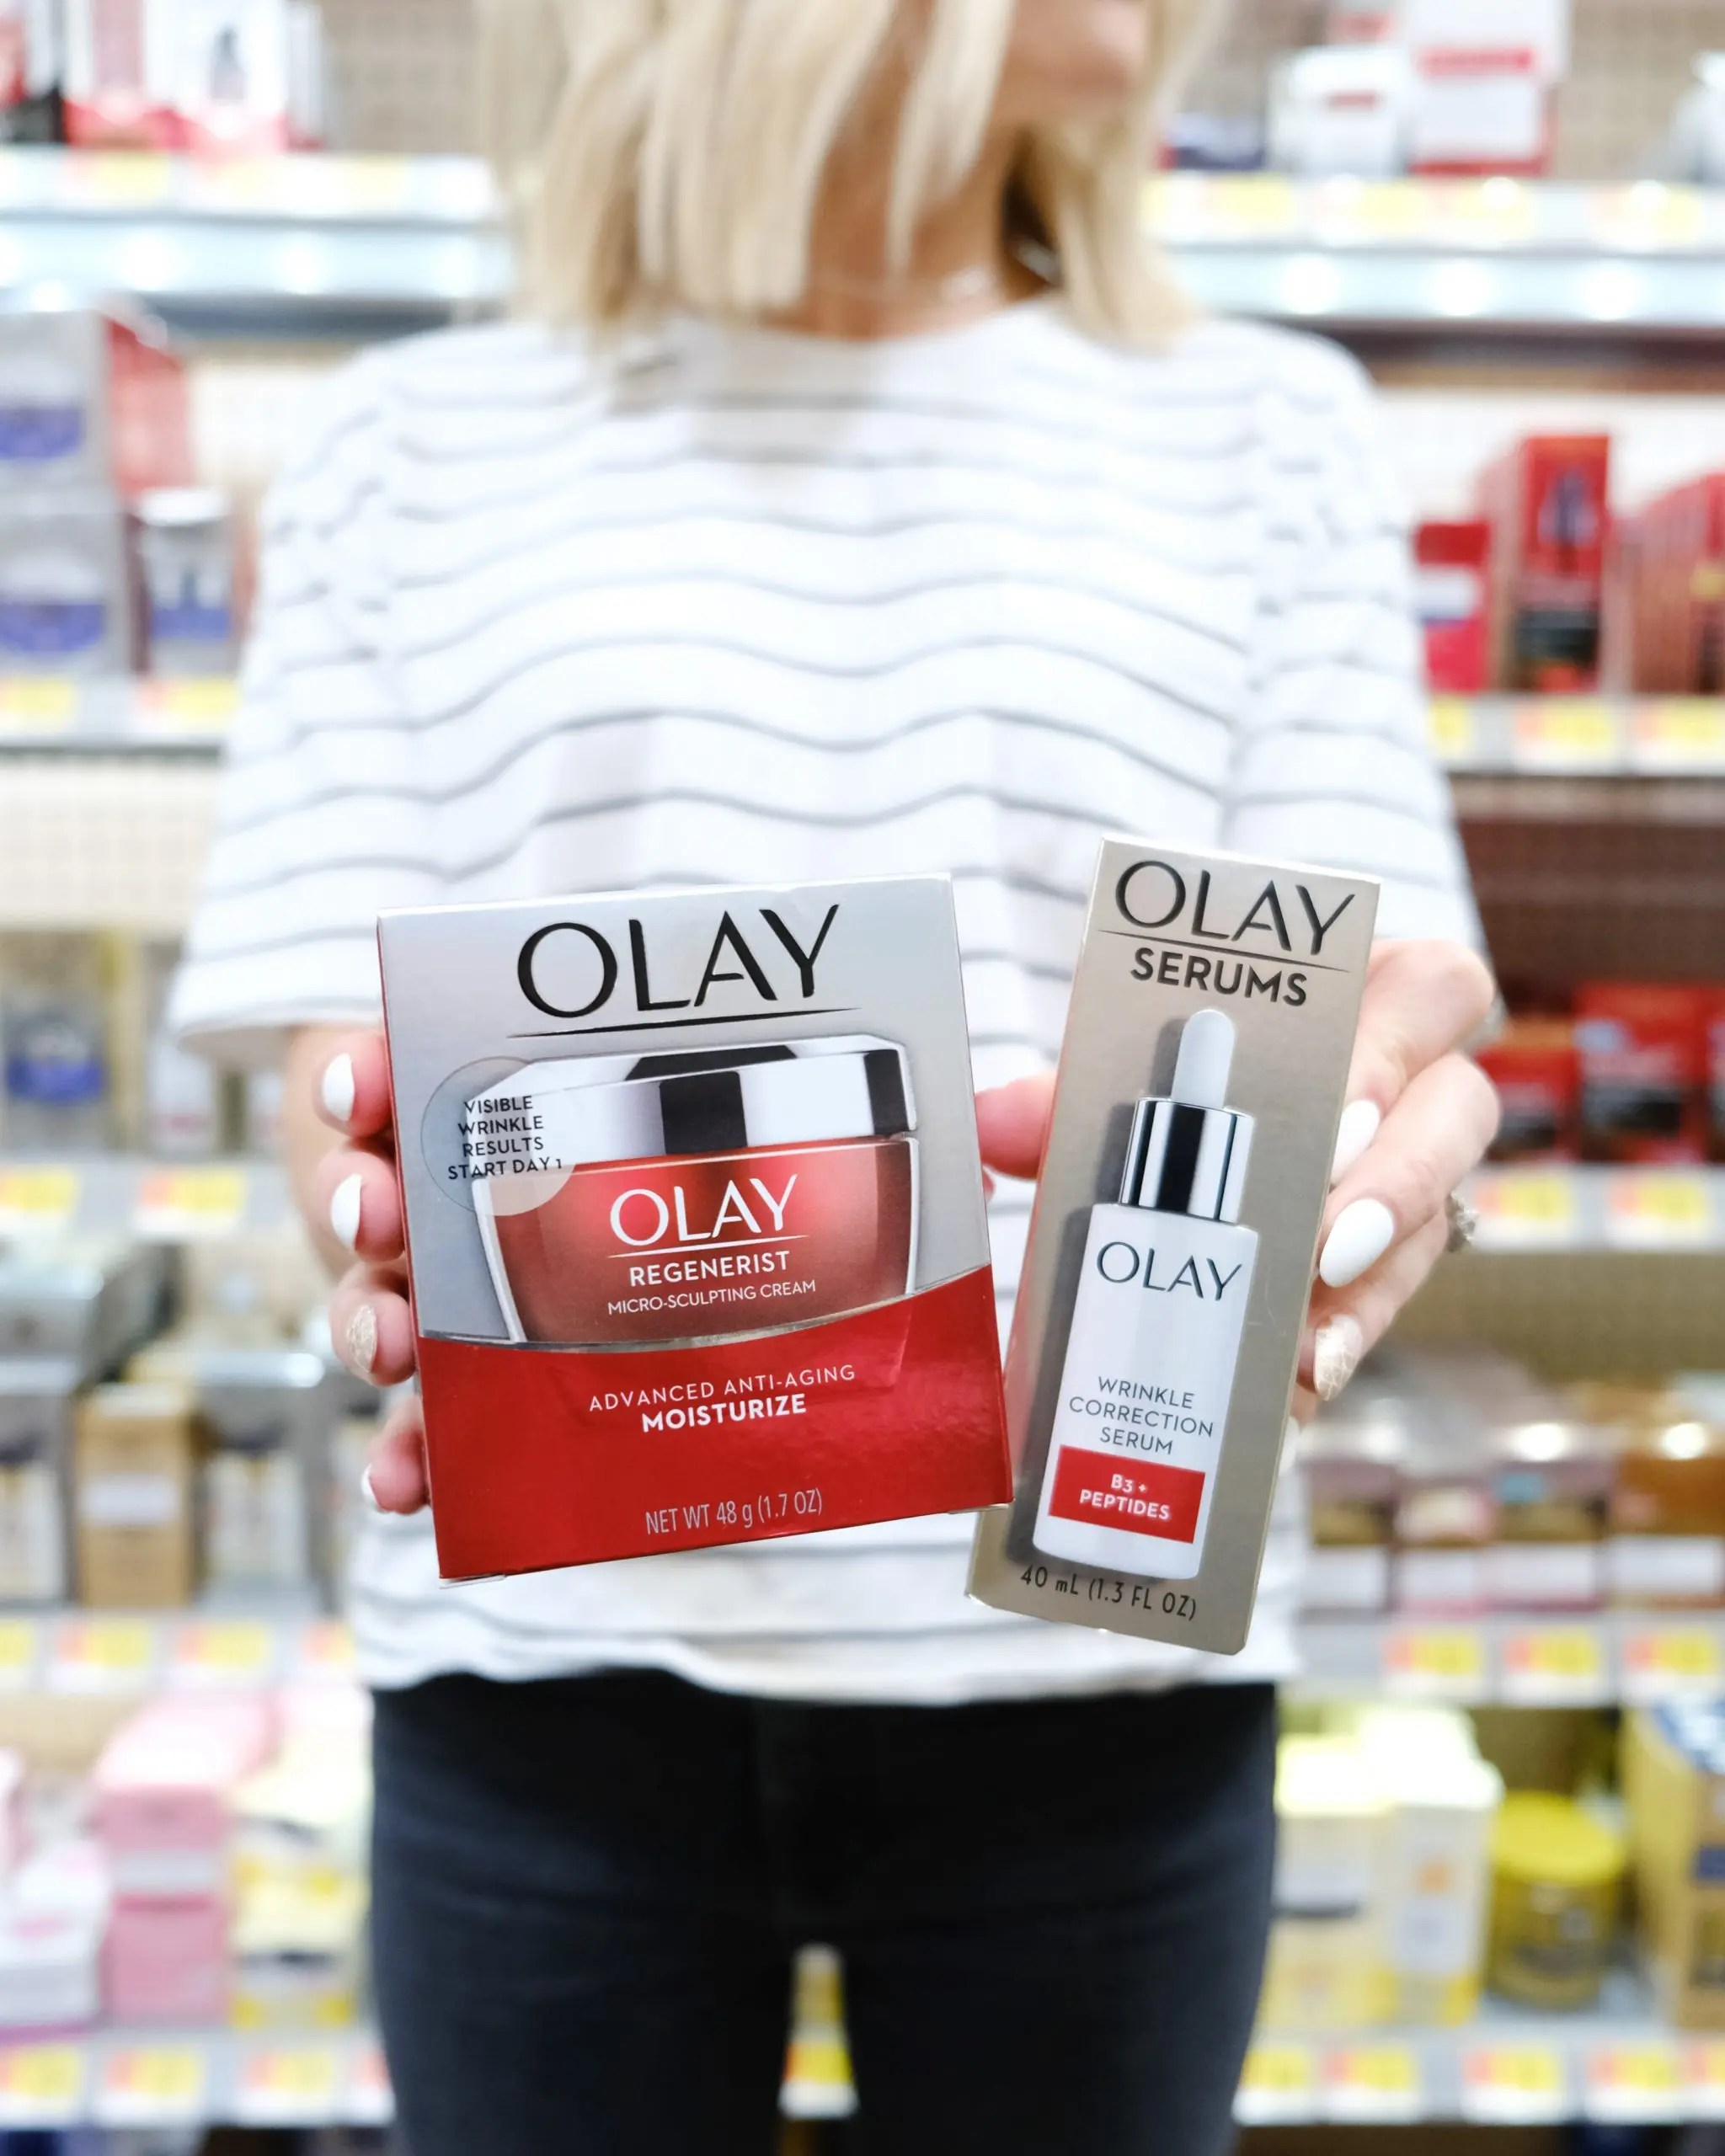 olay micro-sculpting cream and wrinkle correction serum